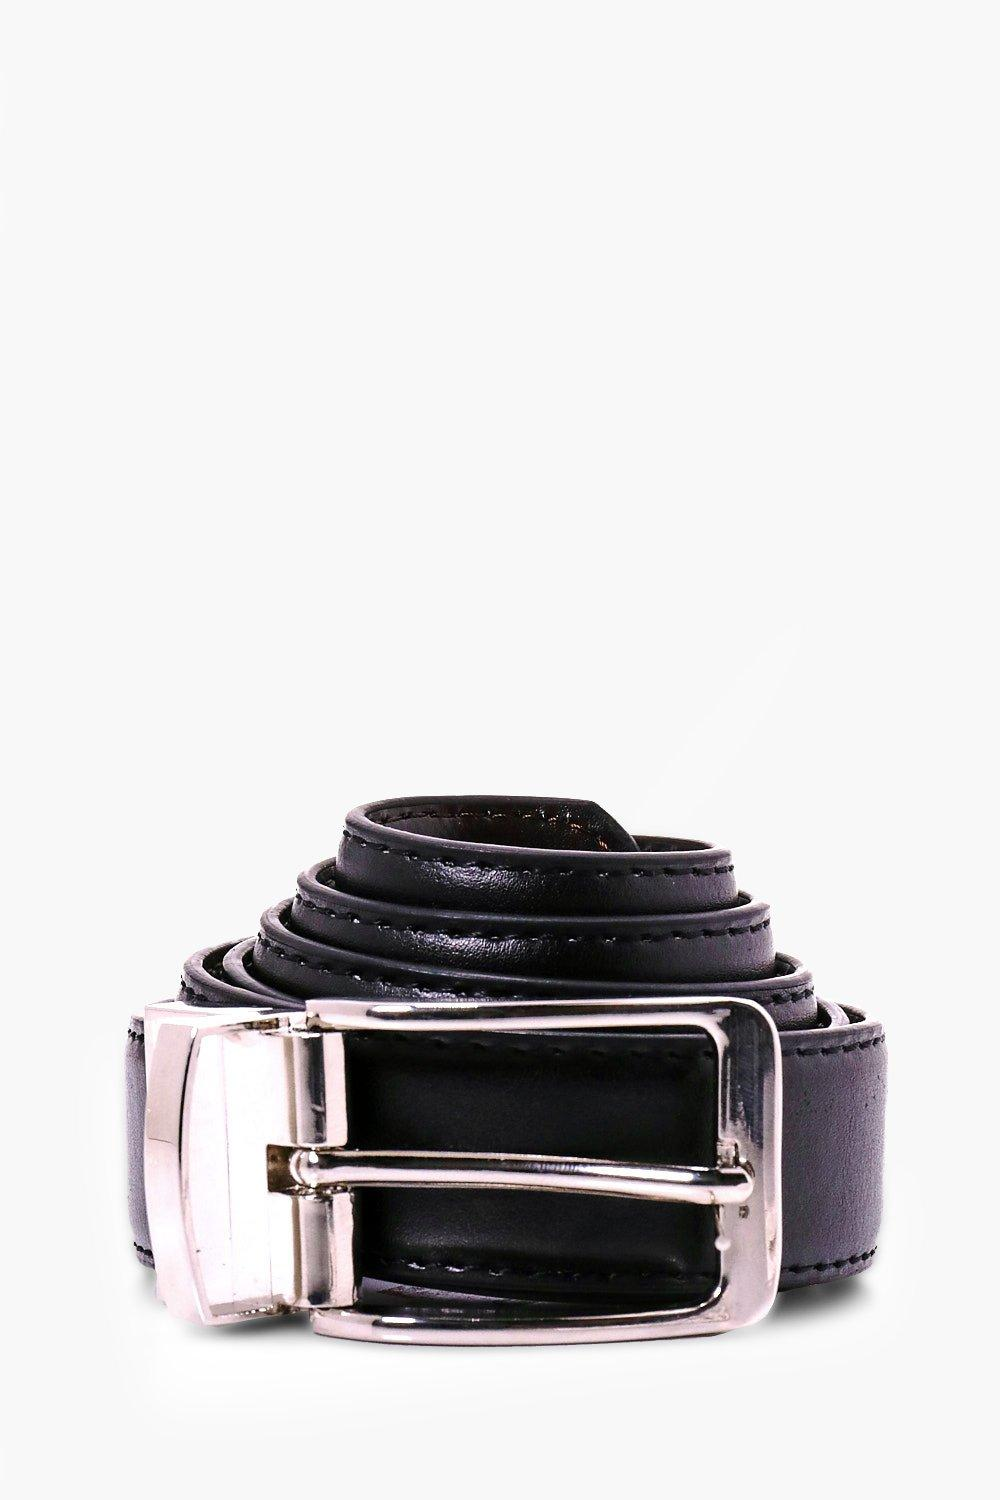 Belt With Chrome Buckle - black - Reversible Belt